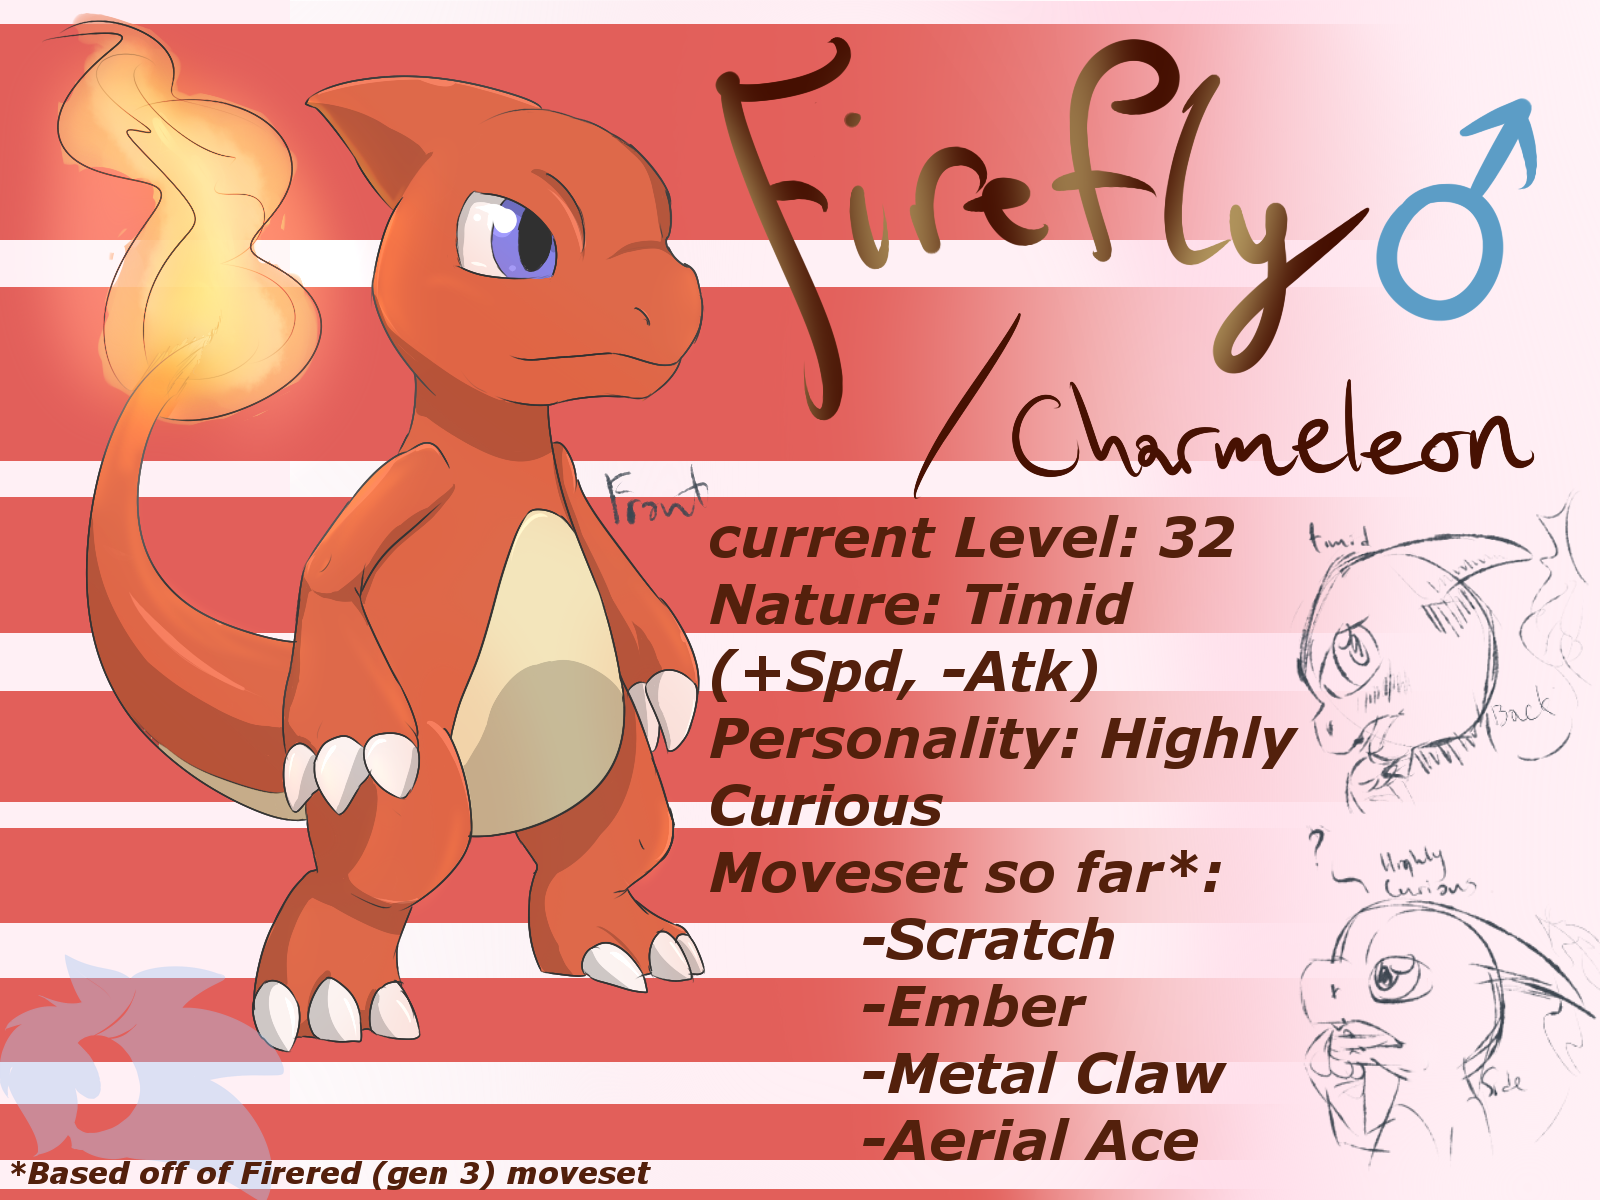 Firefly the Charmeleon by Alexandrite-Dragoness